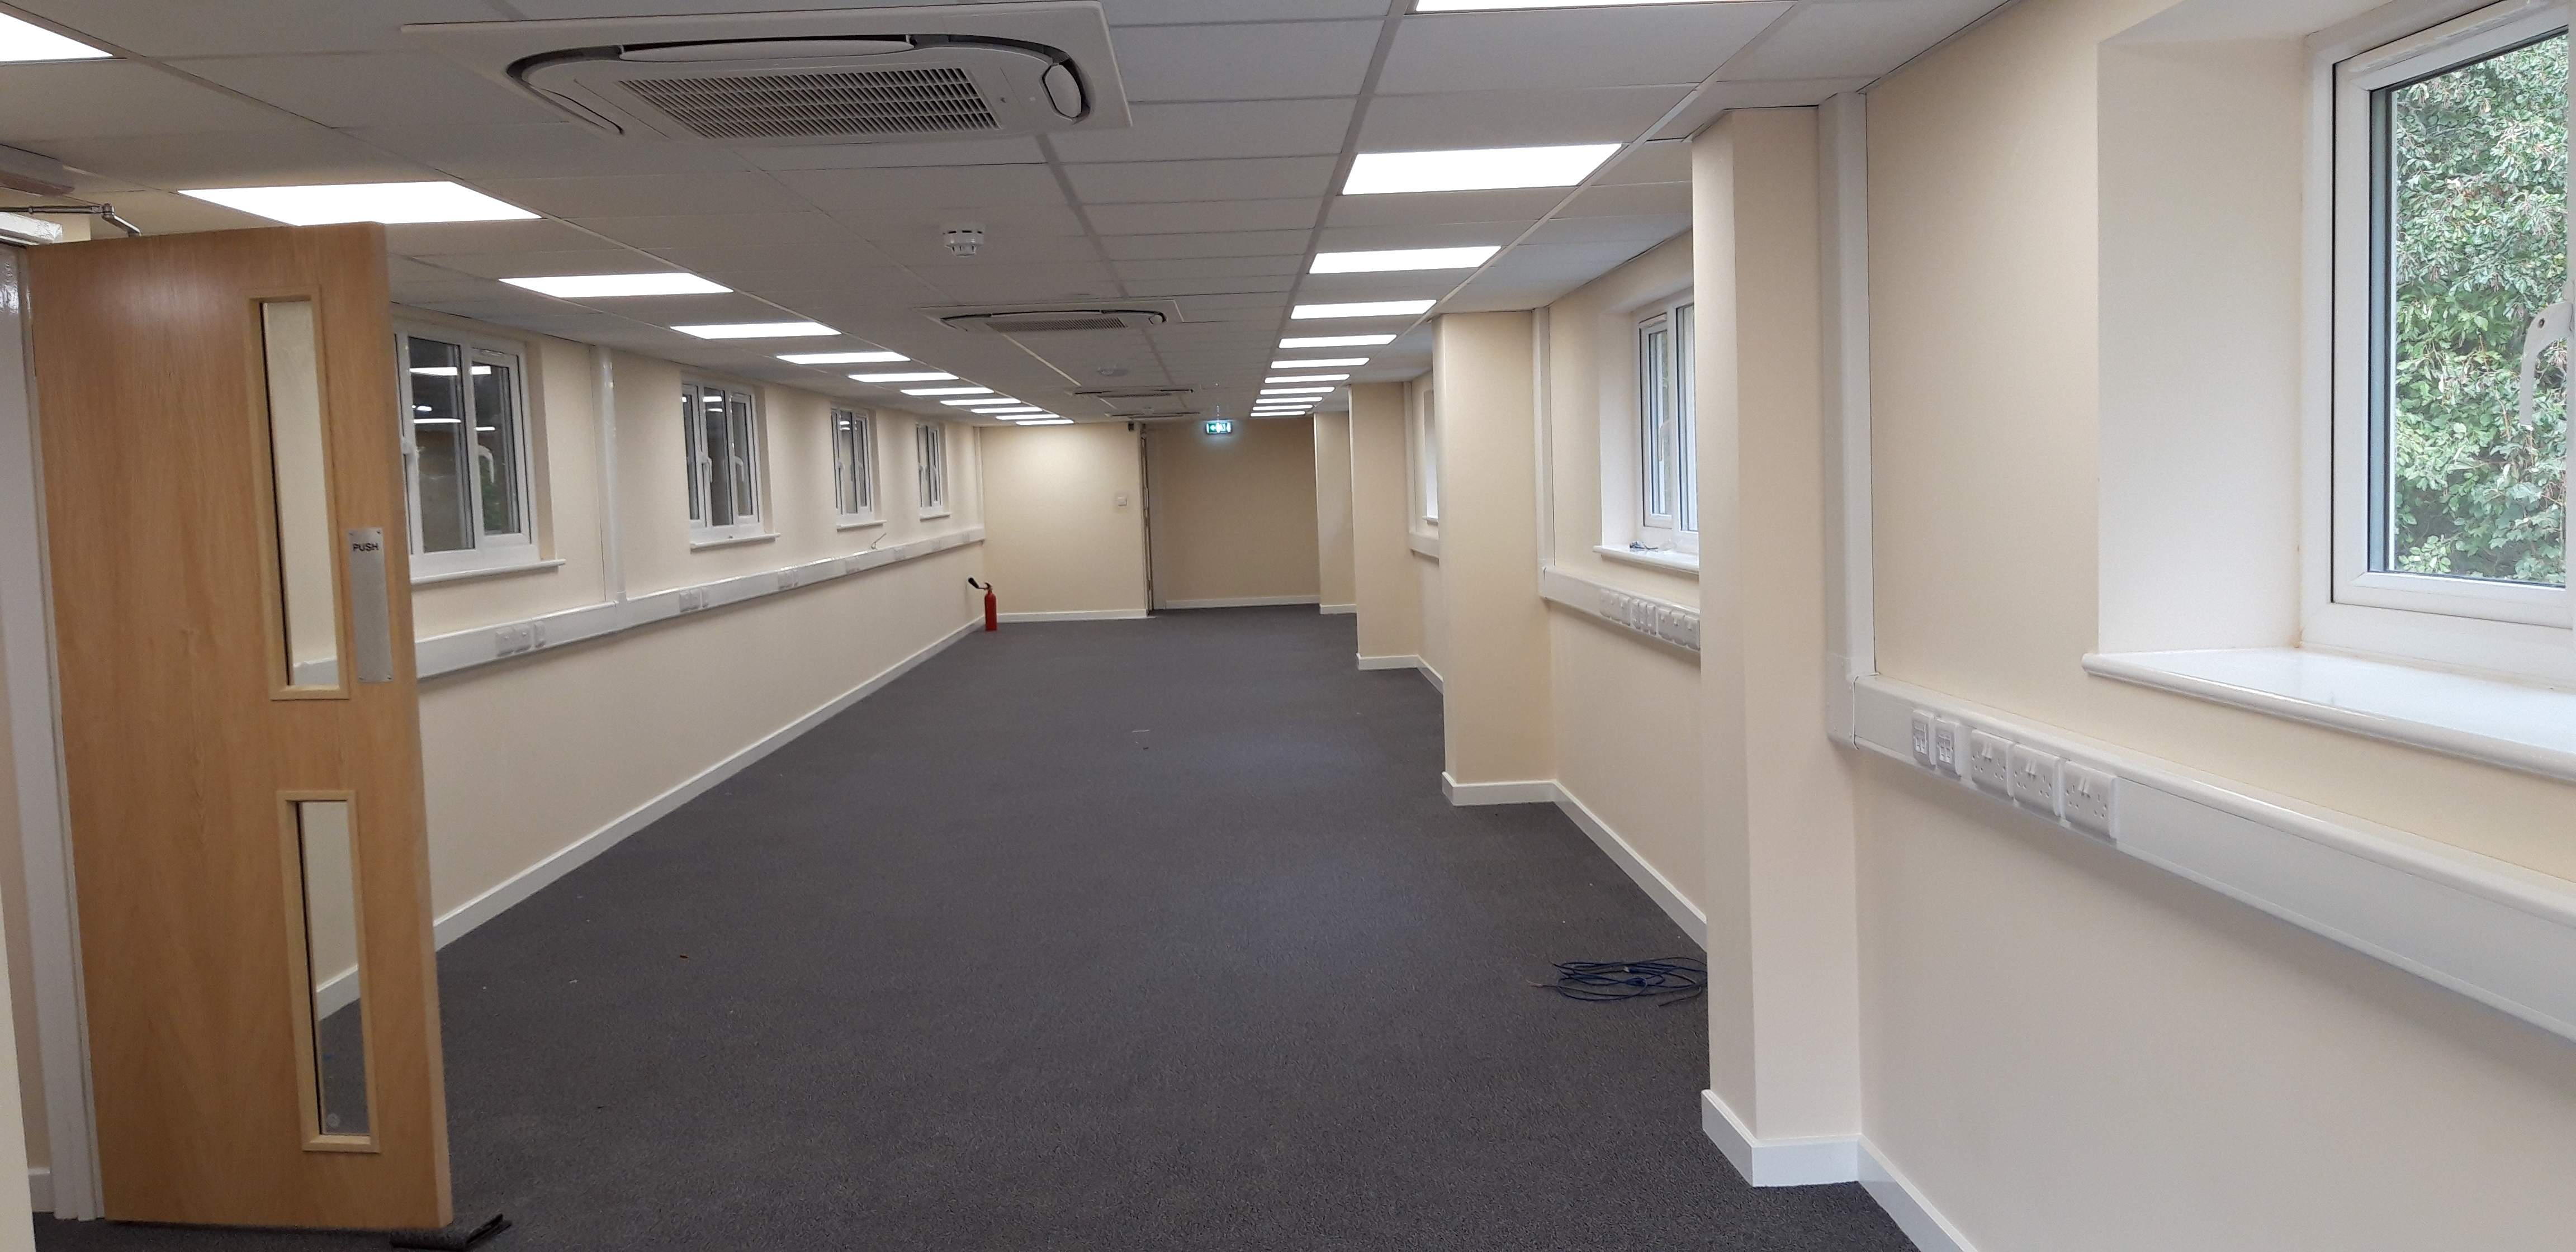 Commercial electrician to rewire my premises in bristol